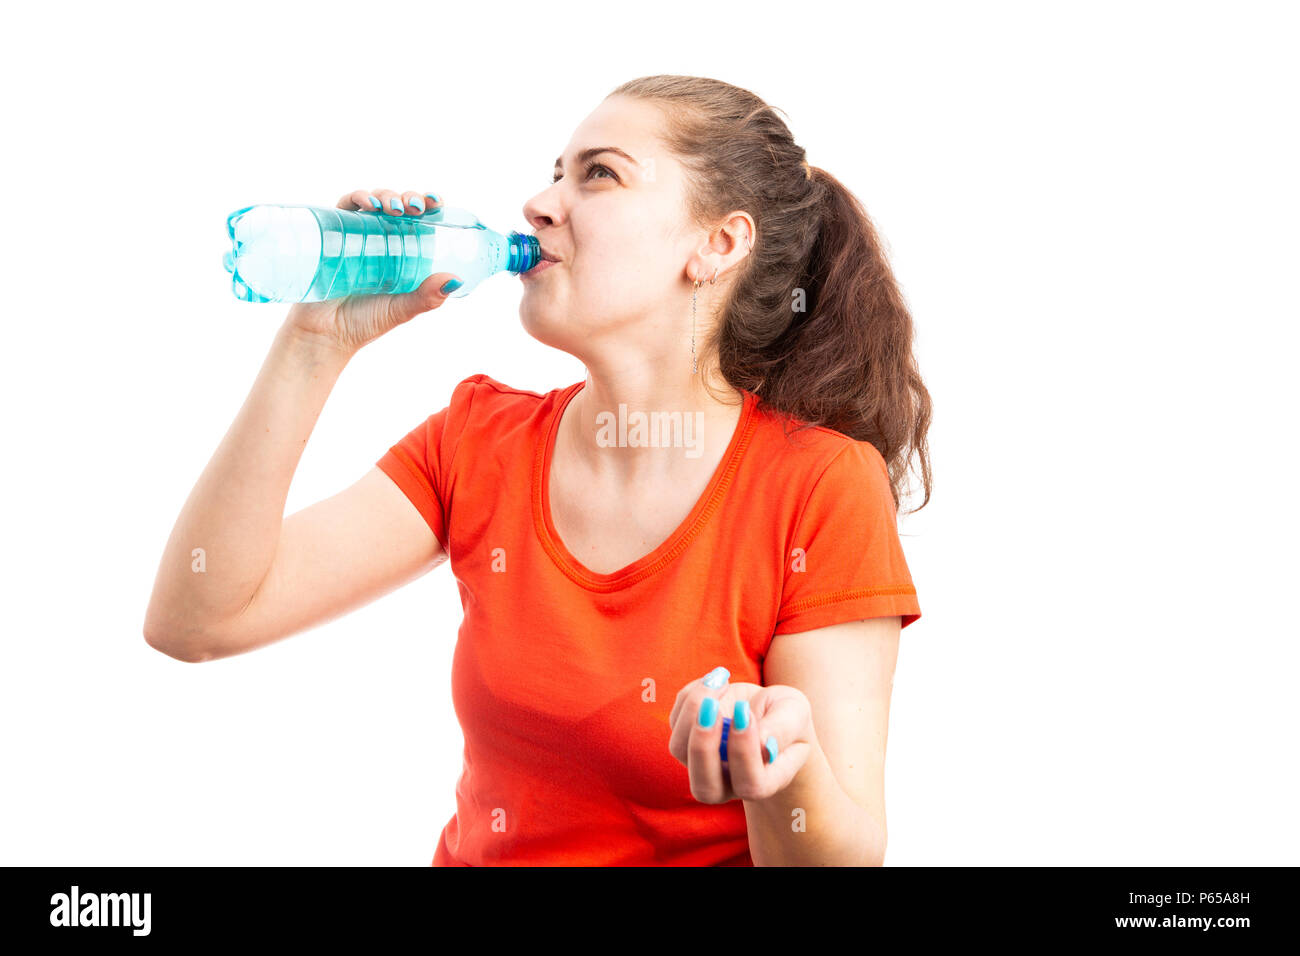 Young woman hydrating by drinking water from bottle as summertime hot weather hydration concept isolated on white background - Stock Image